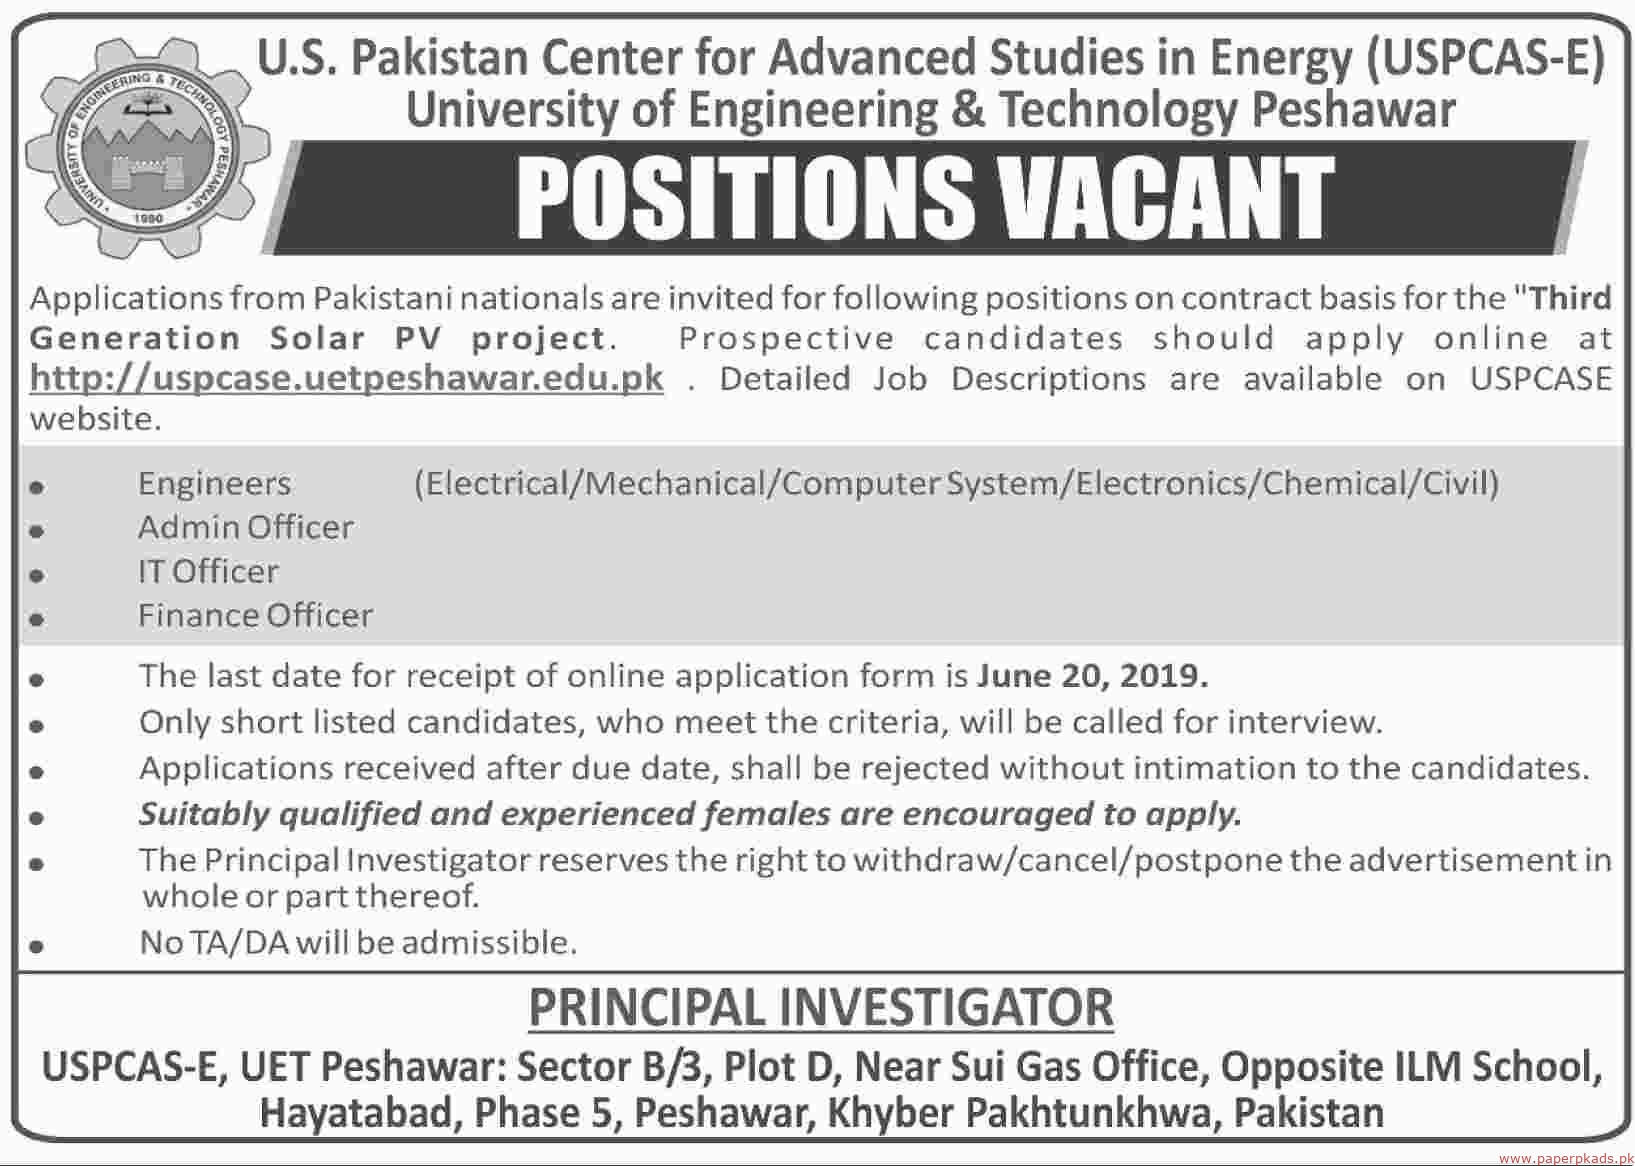 US Pakistan Center for Advanced Studies in Energy (USPCAS-E) University of Engineering & Technology Peshawar Jobs 2019 Latest